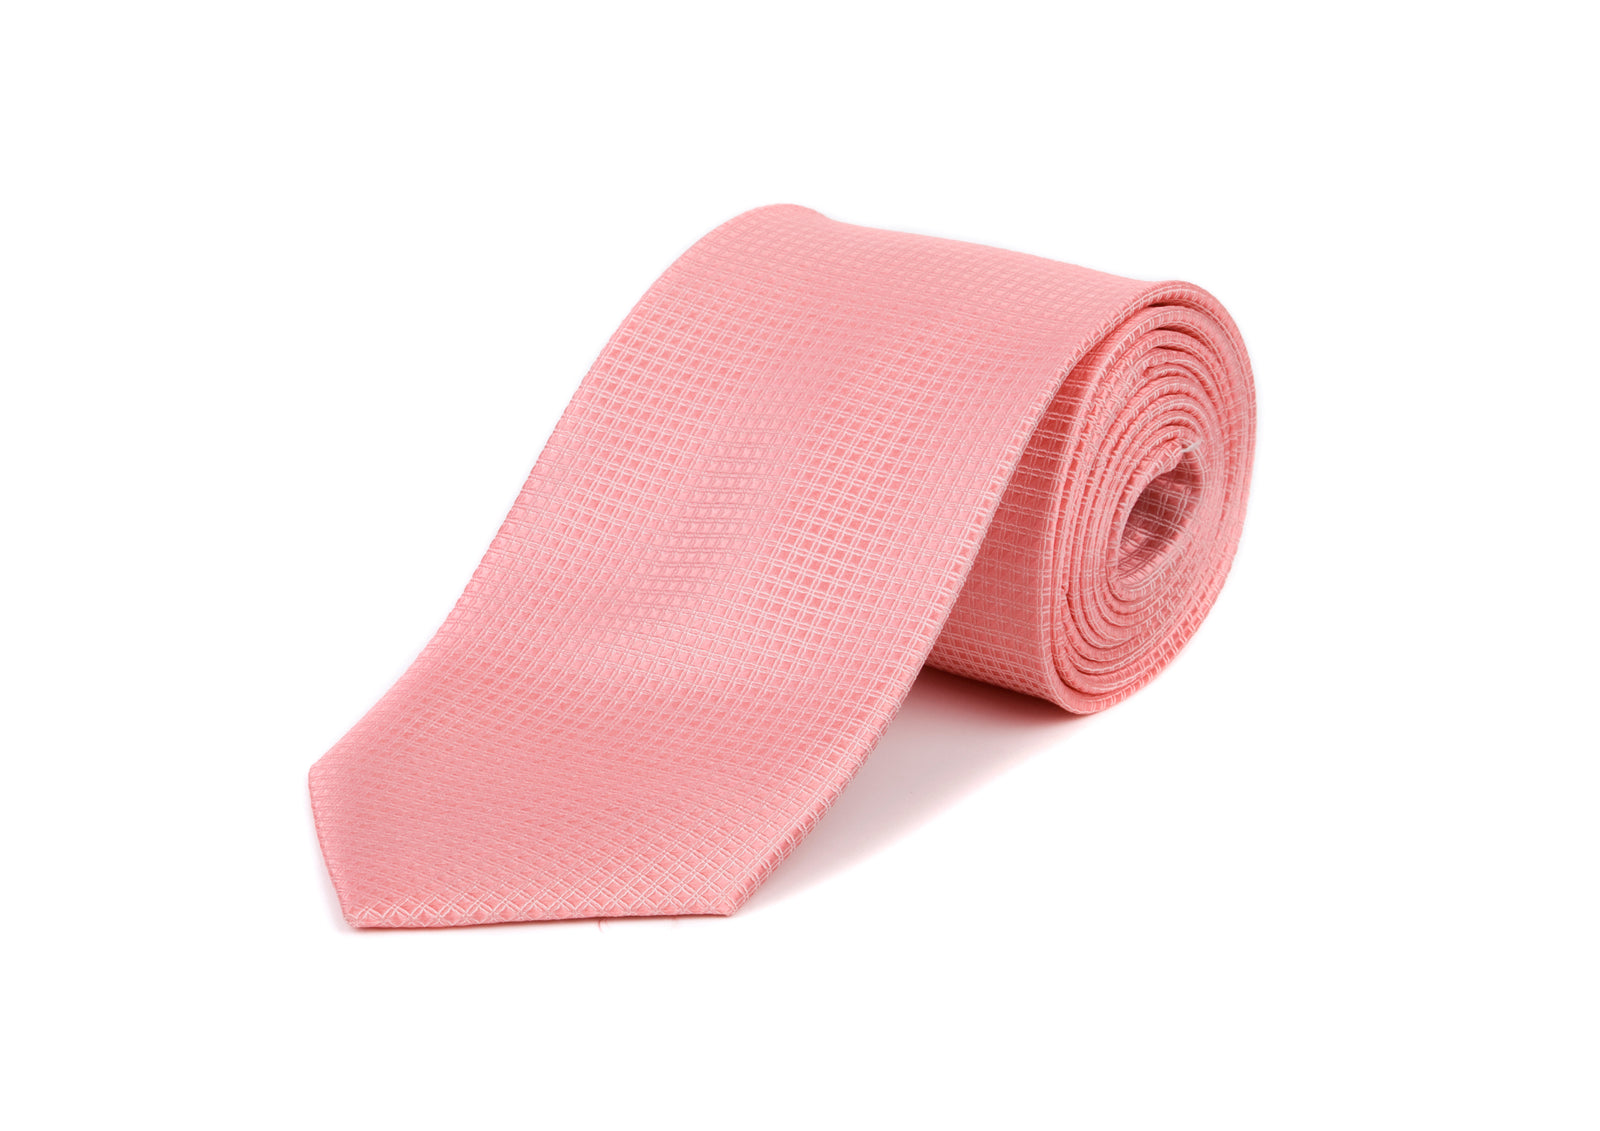 Pink Square Patterned Tie 100% Silk Tie